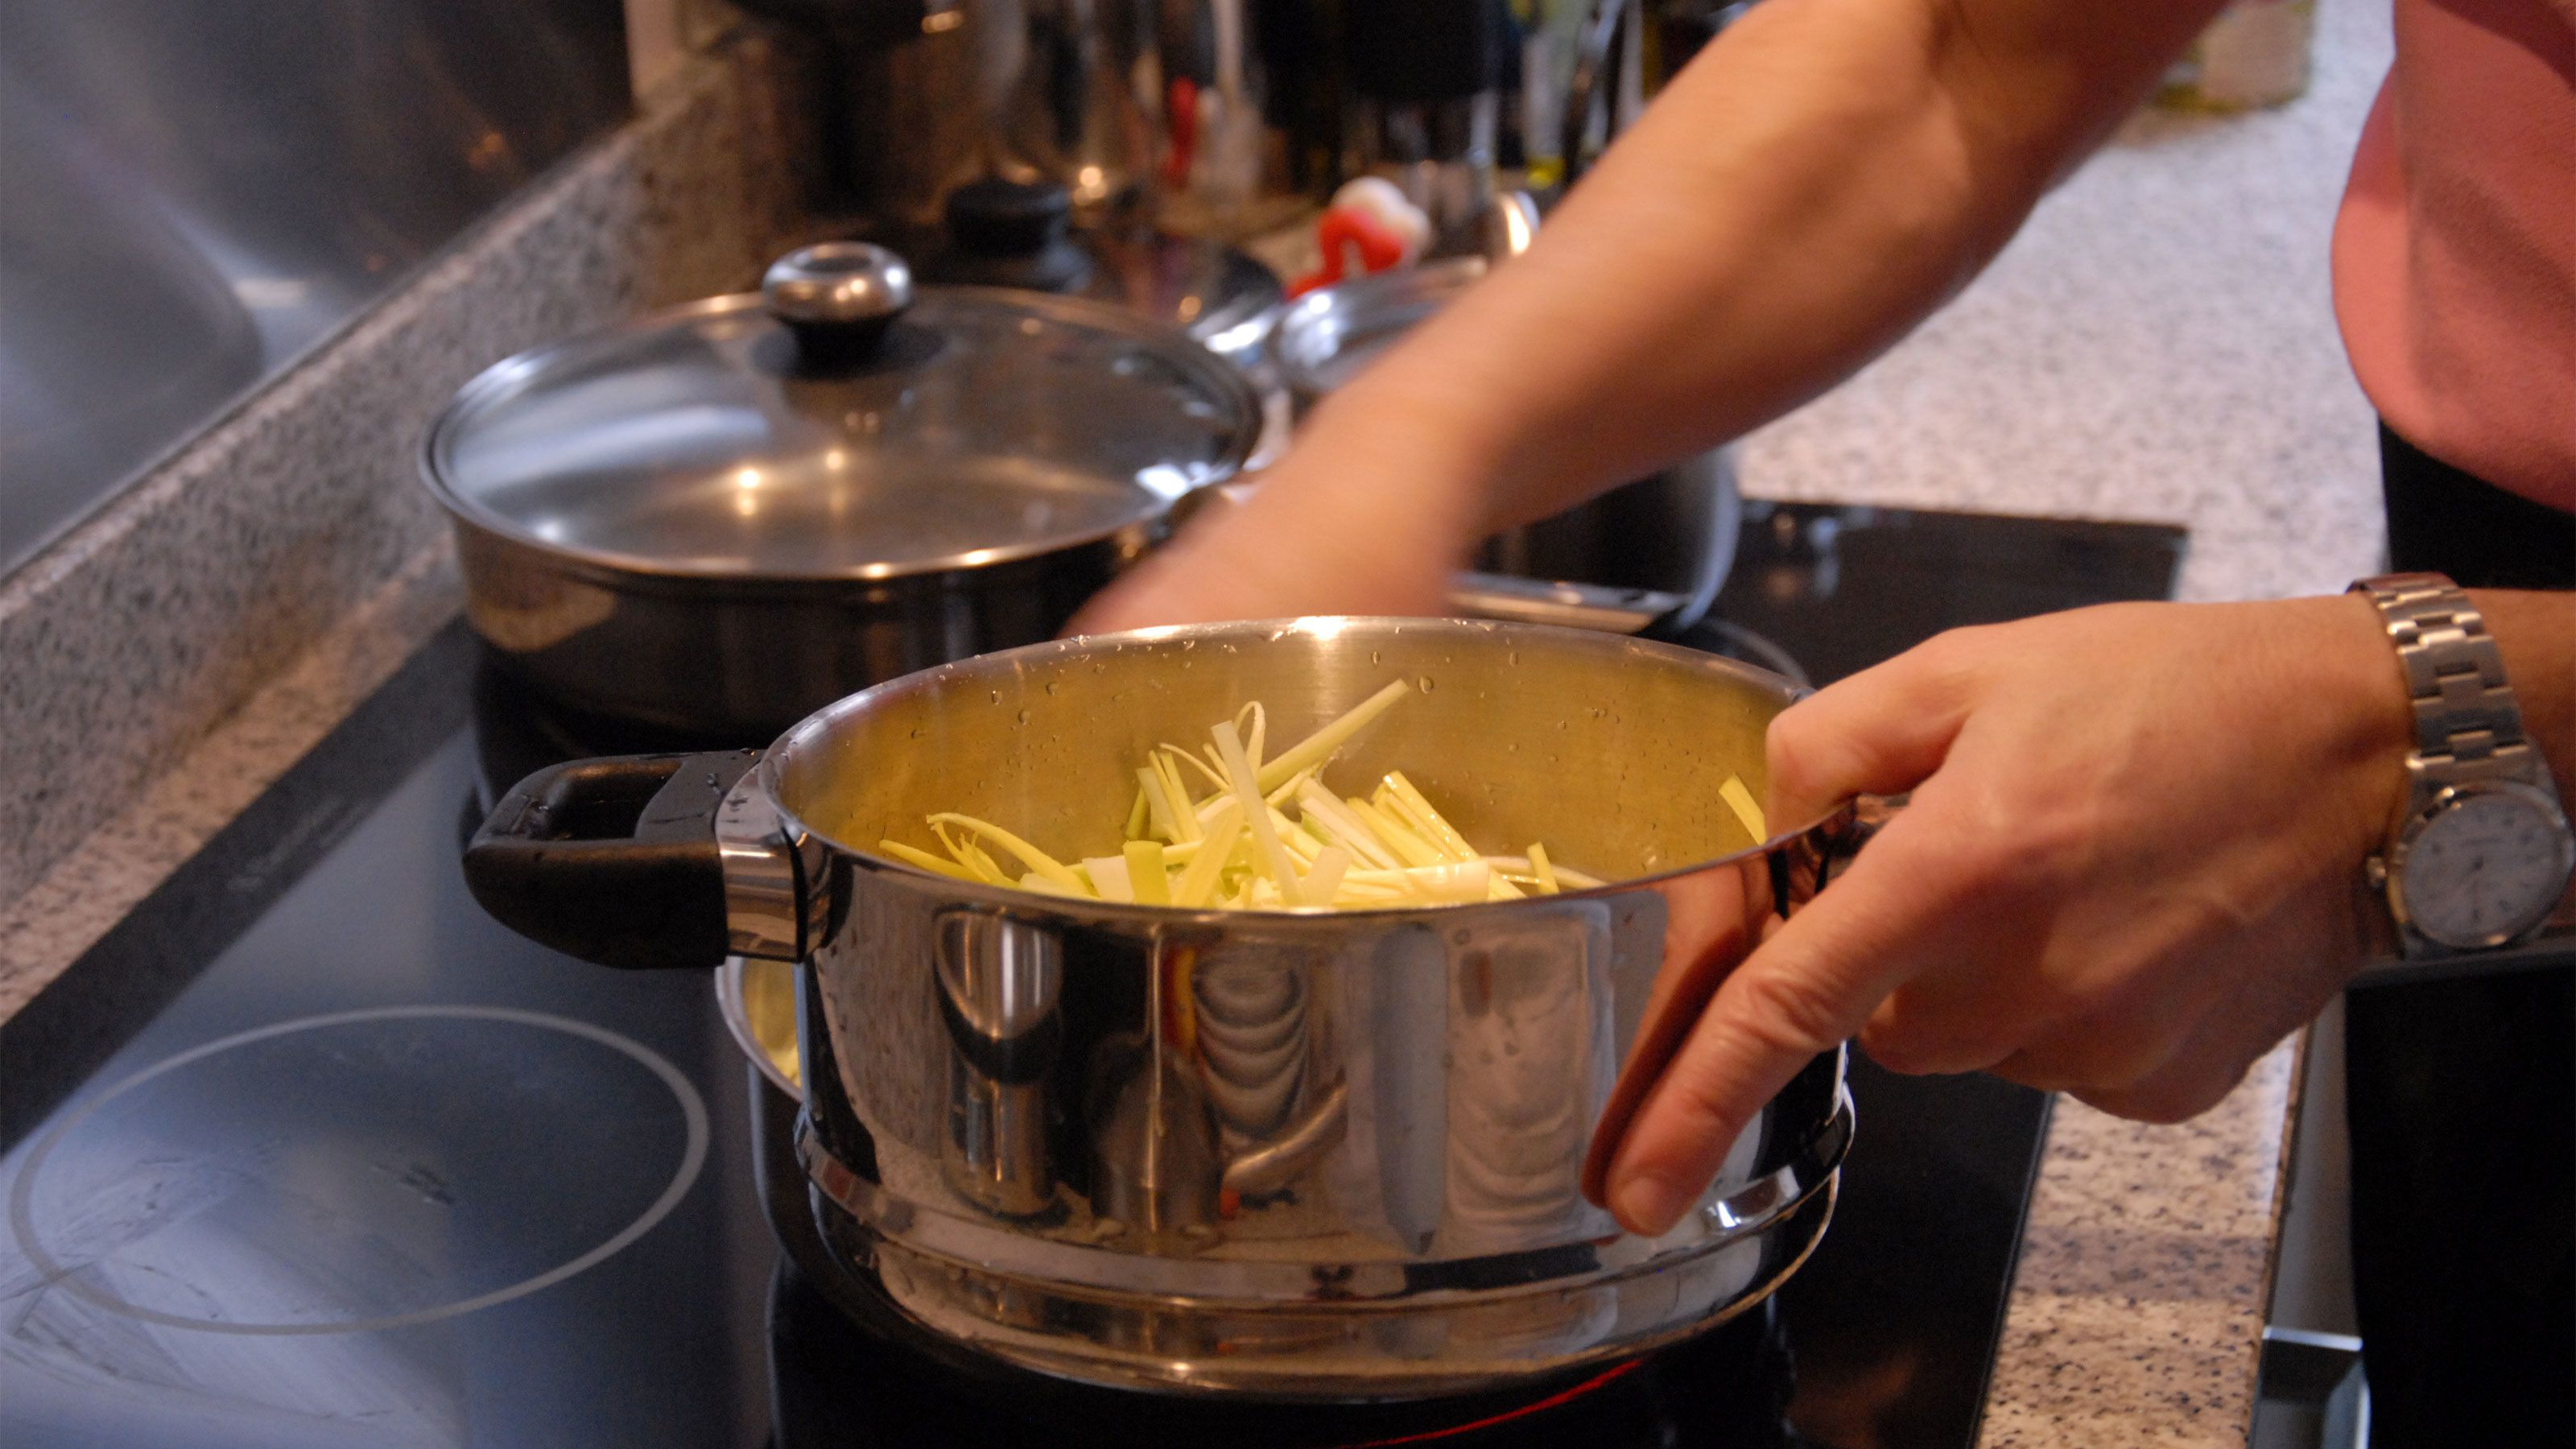 Cooking vegetables over a stove